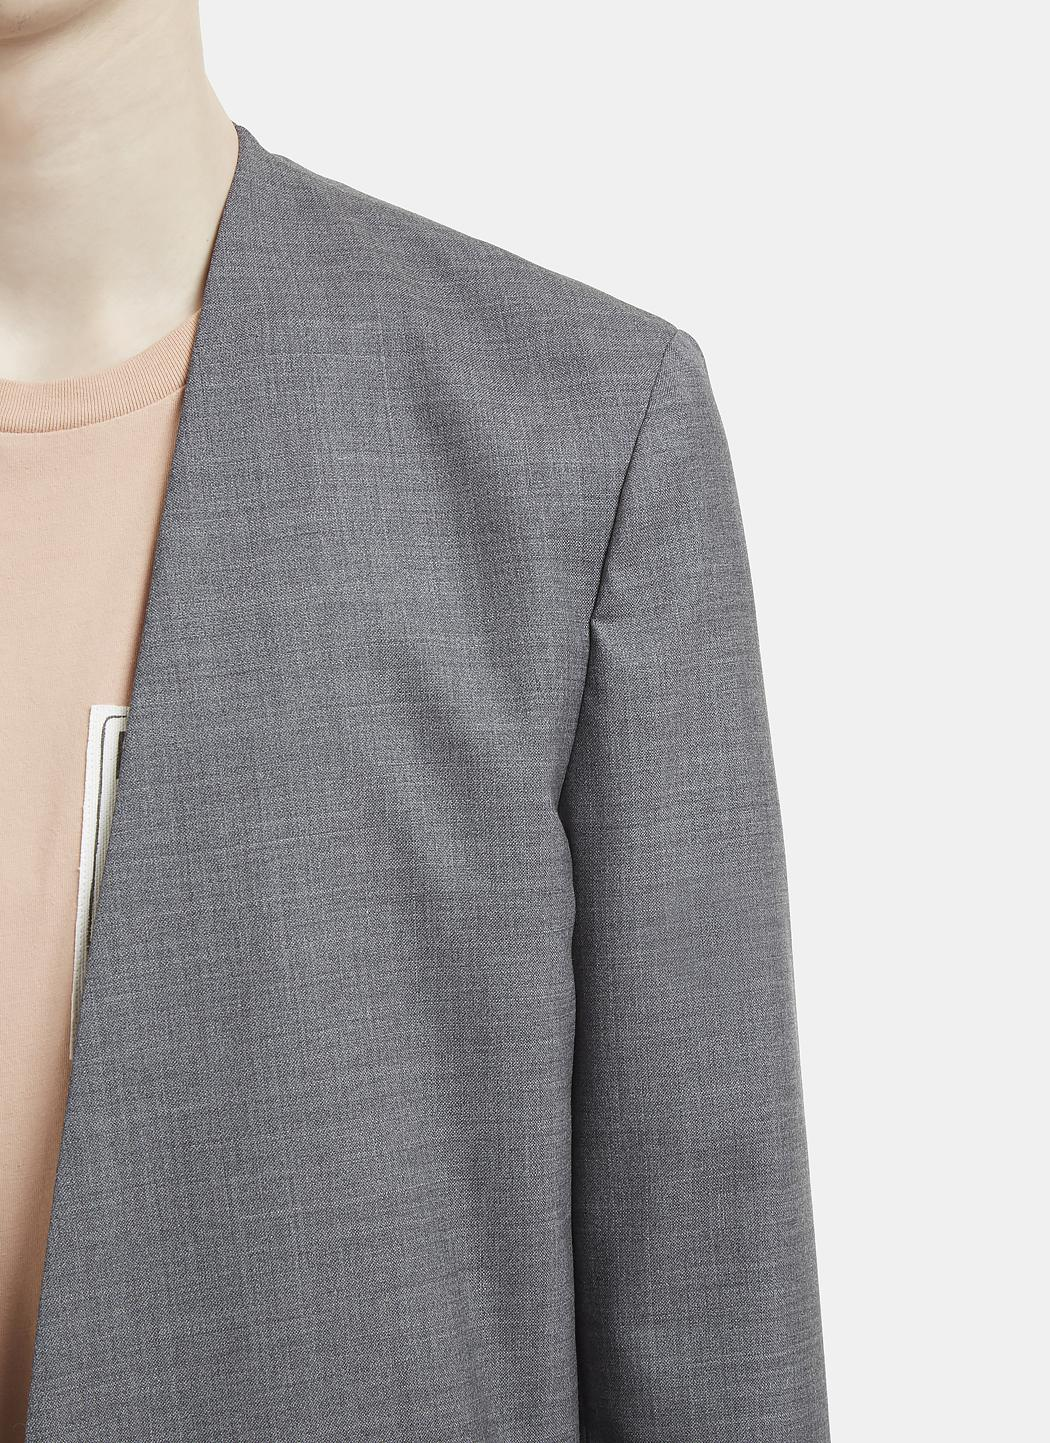 Maison Margiela Wool Collarless Blazer Jacket In Grey in Grey for Men